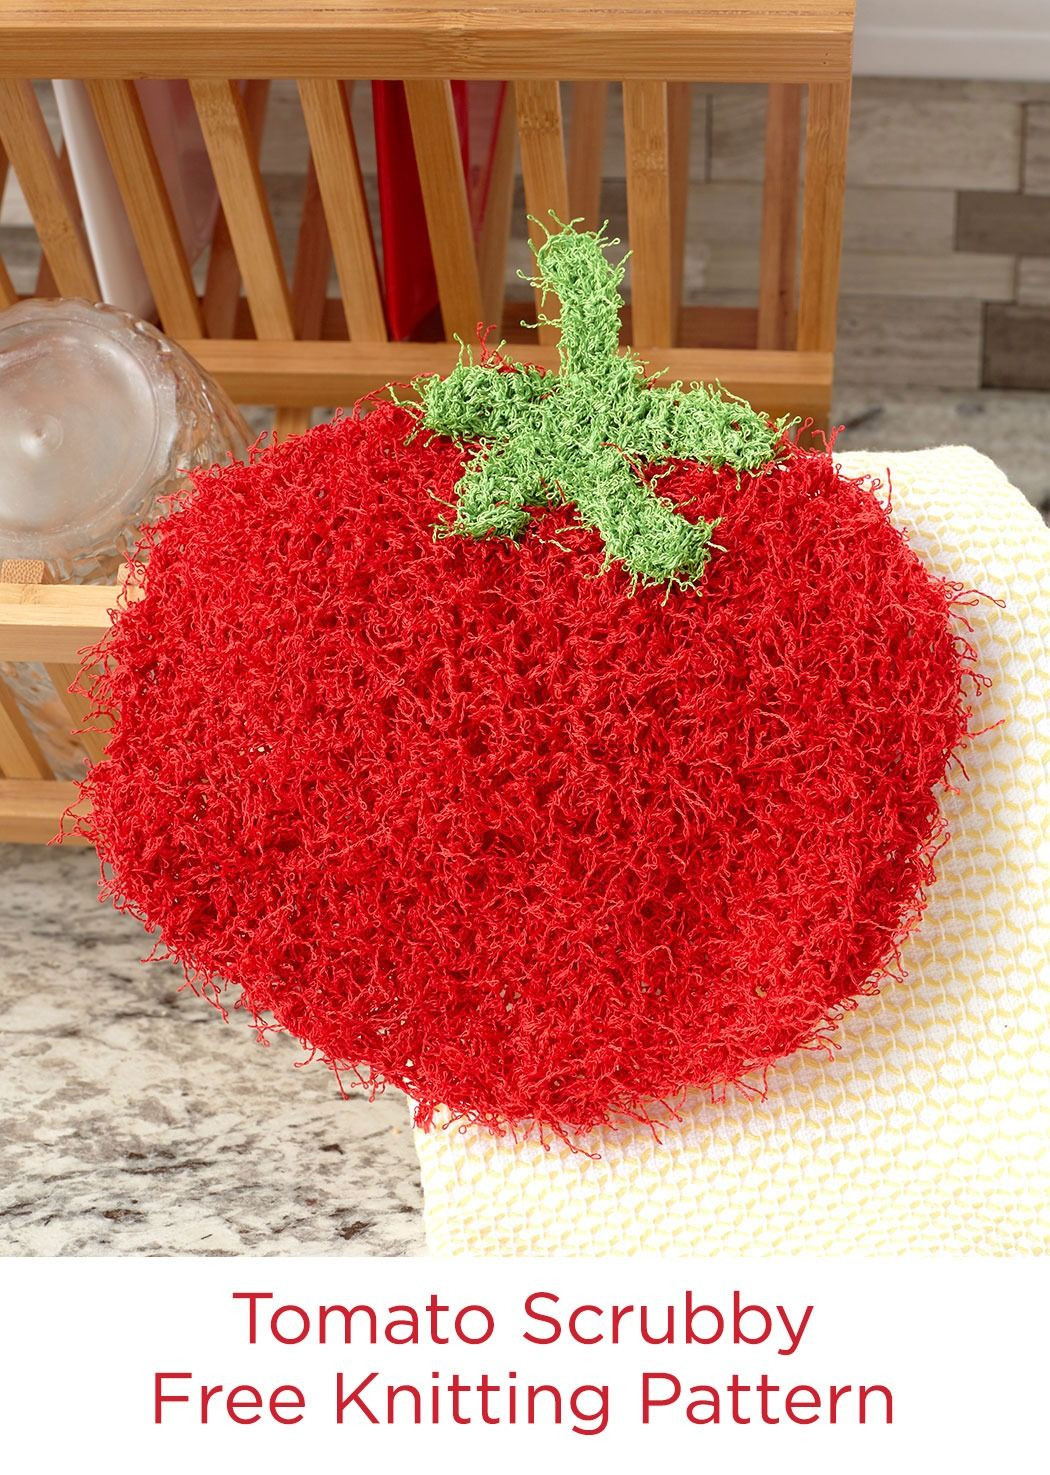 Free Crochet Patterns For Scrubby Yarn : Tomato Scrubby Free Knitting Pattern in Red Heart Scrubby ...